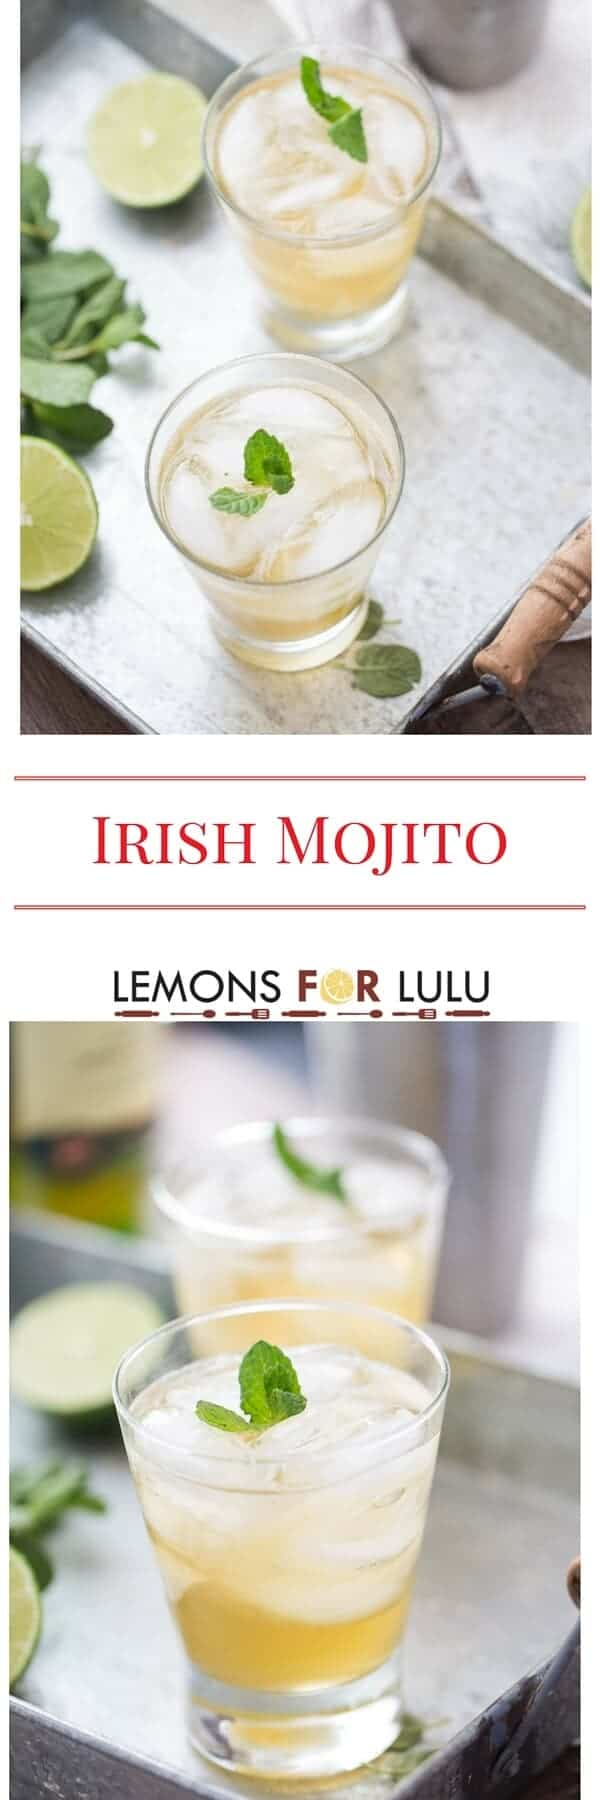 This cocktail takes you from Cuba to Ireland with each sip! This mint mojito recipe with simple syrup and Irish whiskey; a new classic cocktail!